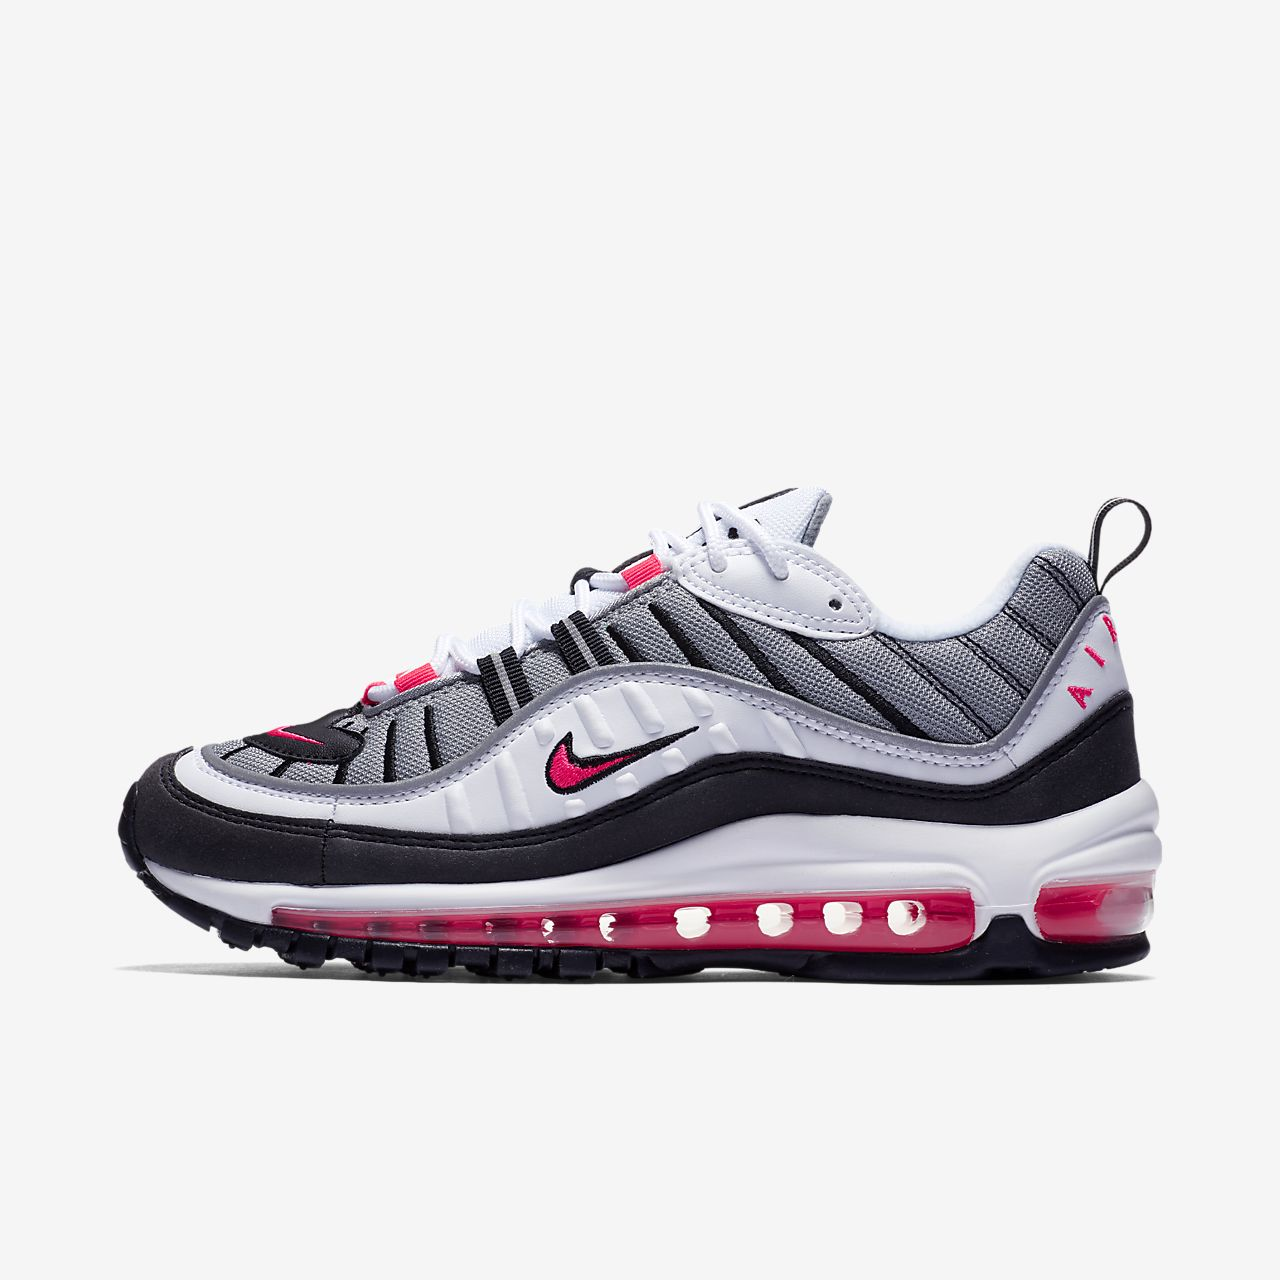 9 Best air max 98 for sale images | Nike air max, Air max